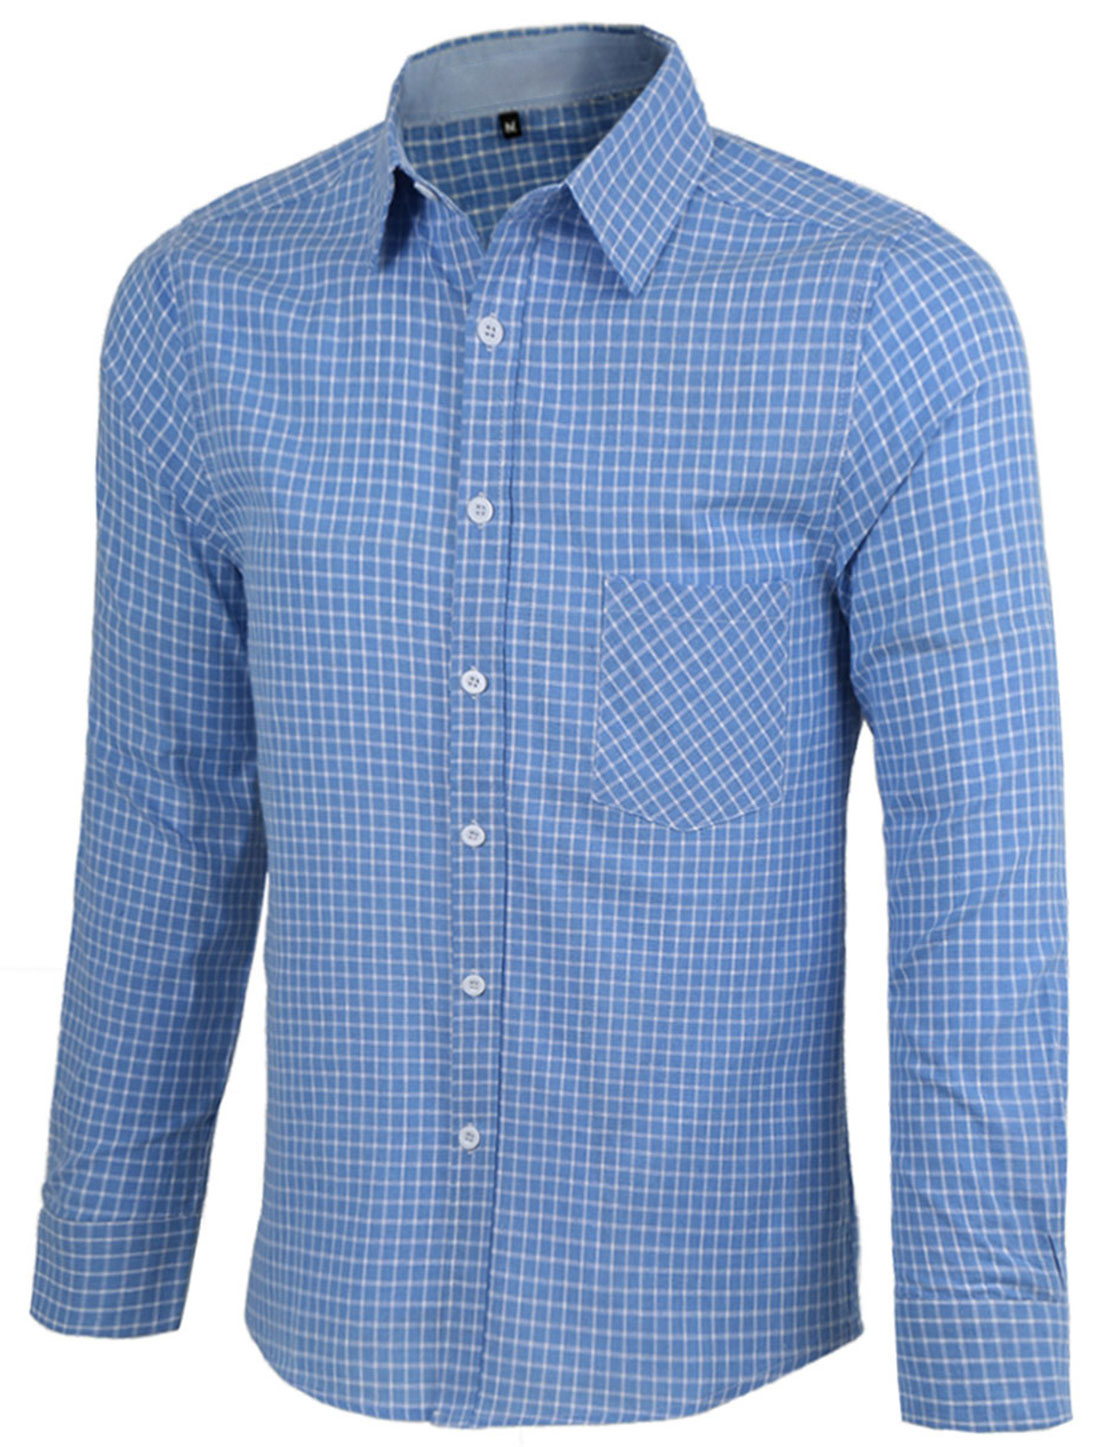 Men Point Collar Long Sleeve Plaids Button Front Gentleman Shirt Sky Blue M